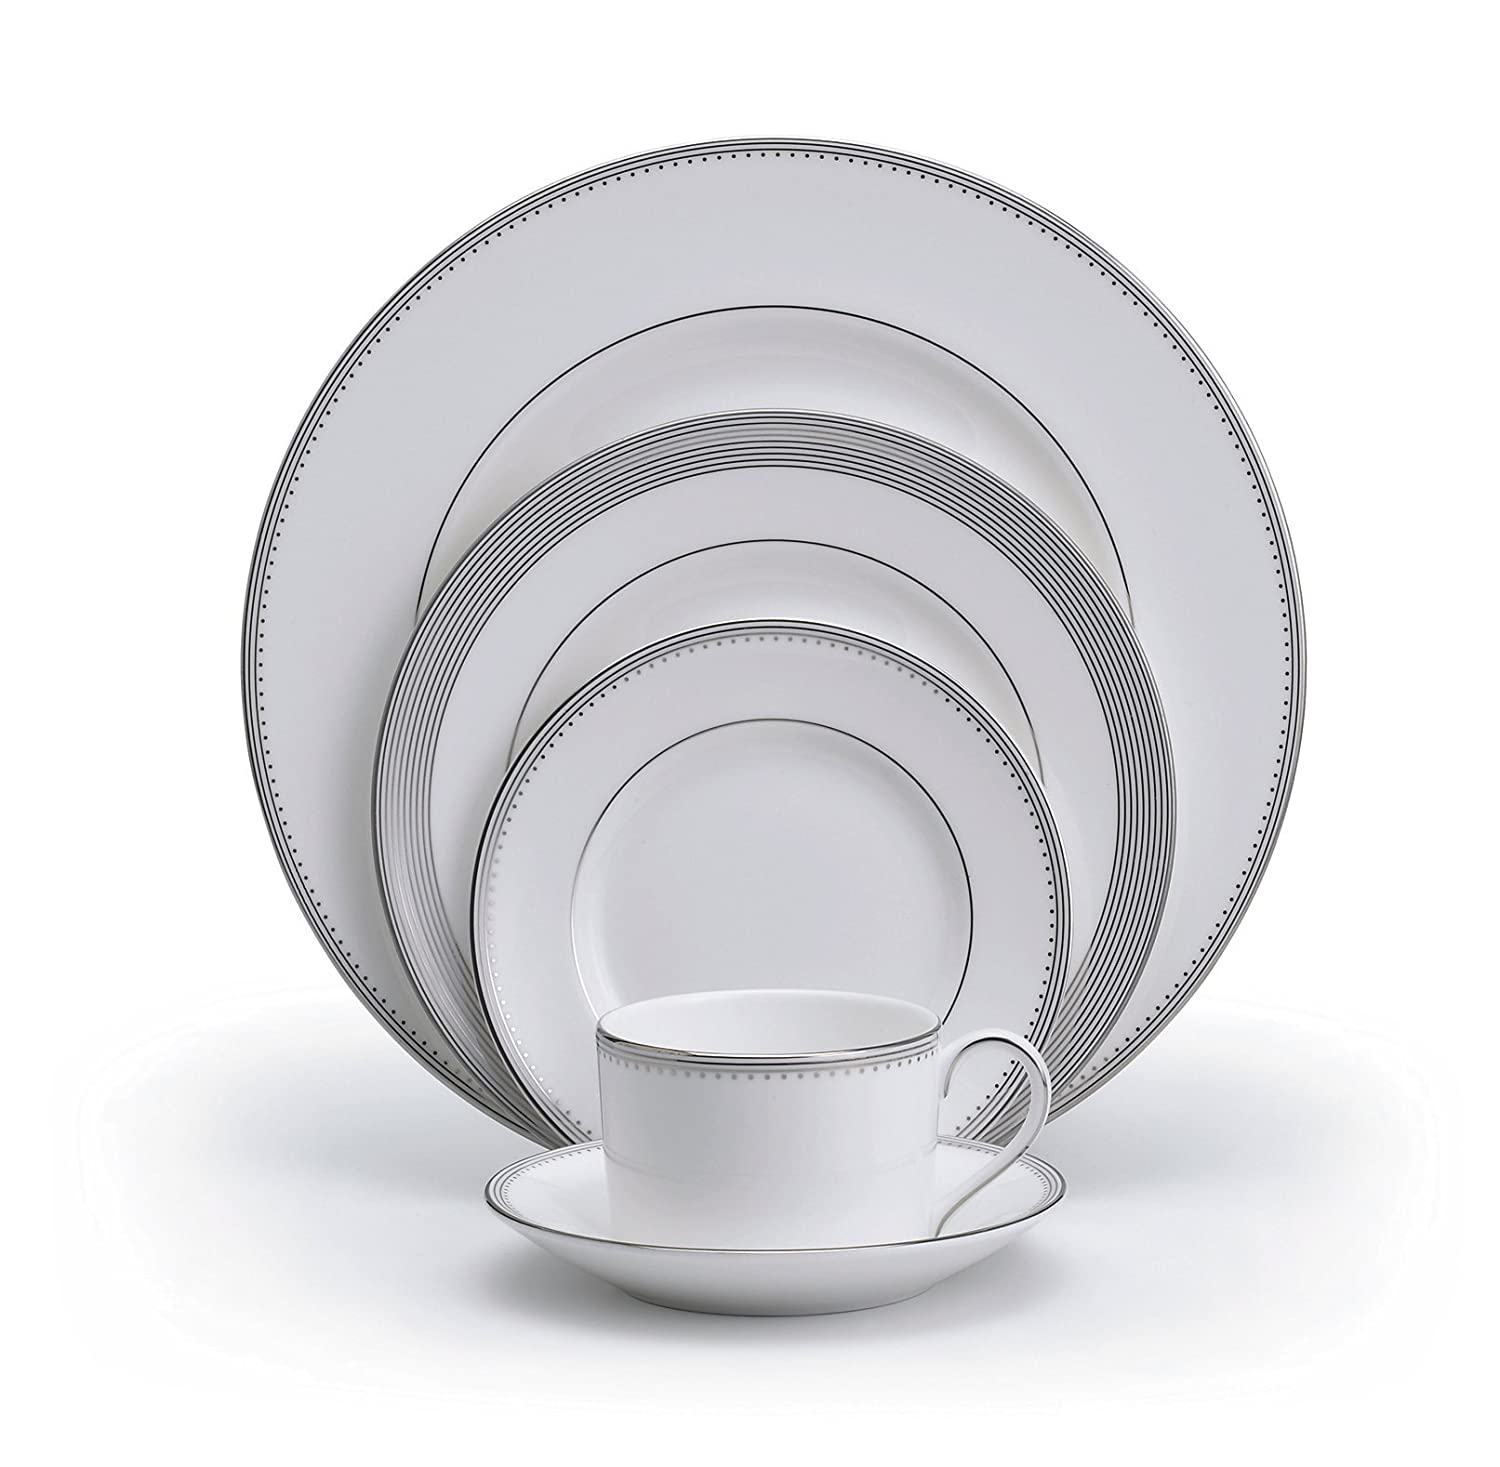 amazoncom vera wang wedgwood grosgrain 5piece place setting service for 1 dinnerware sets dinnerware sets